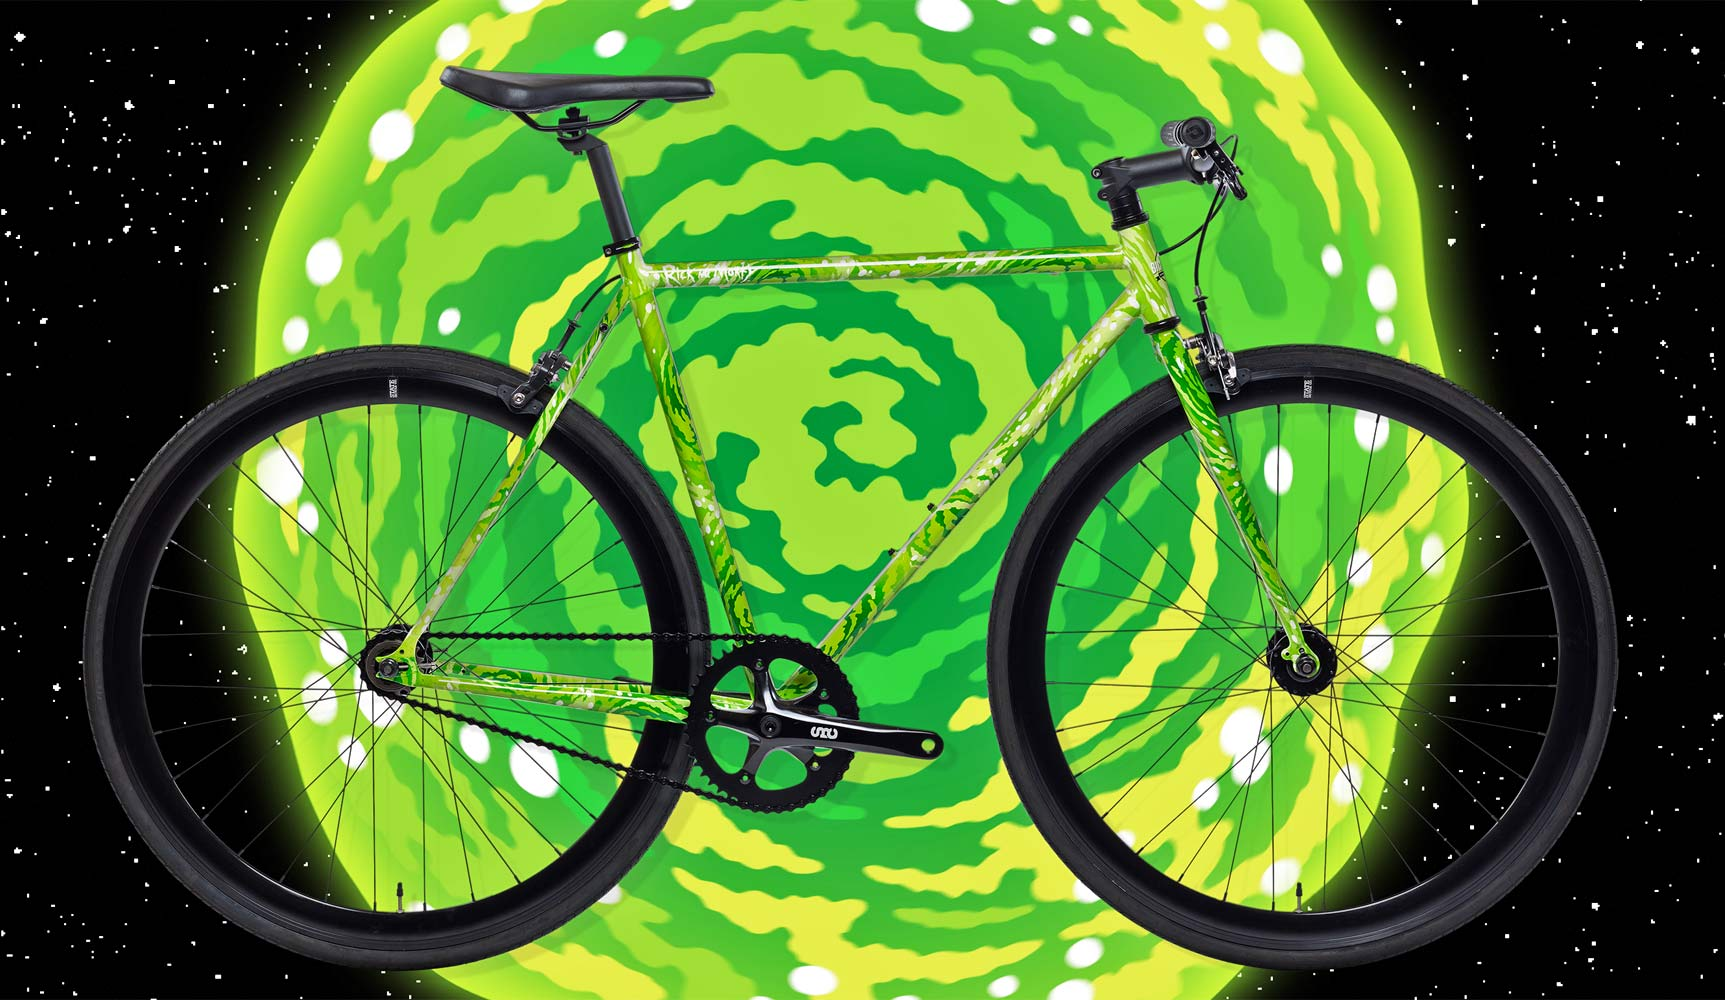 State Bicycle Co x Rick and Morty collection, limited edition interdimensional portal bikes clothing accessories, spiral